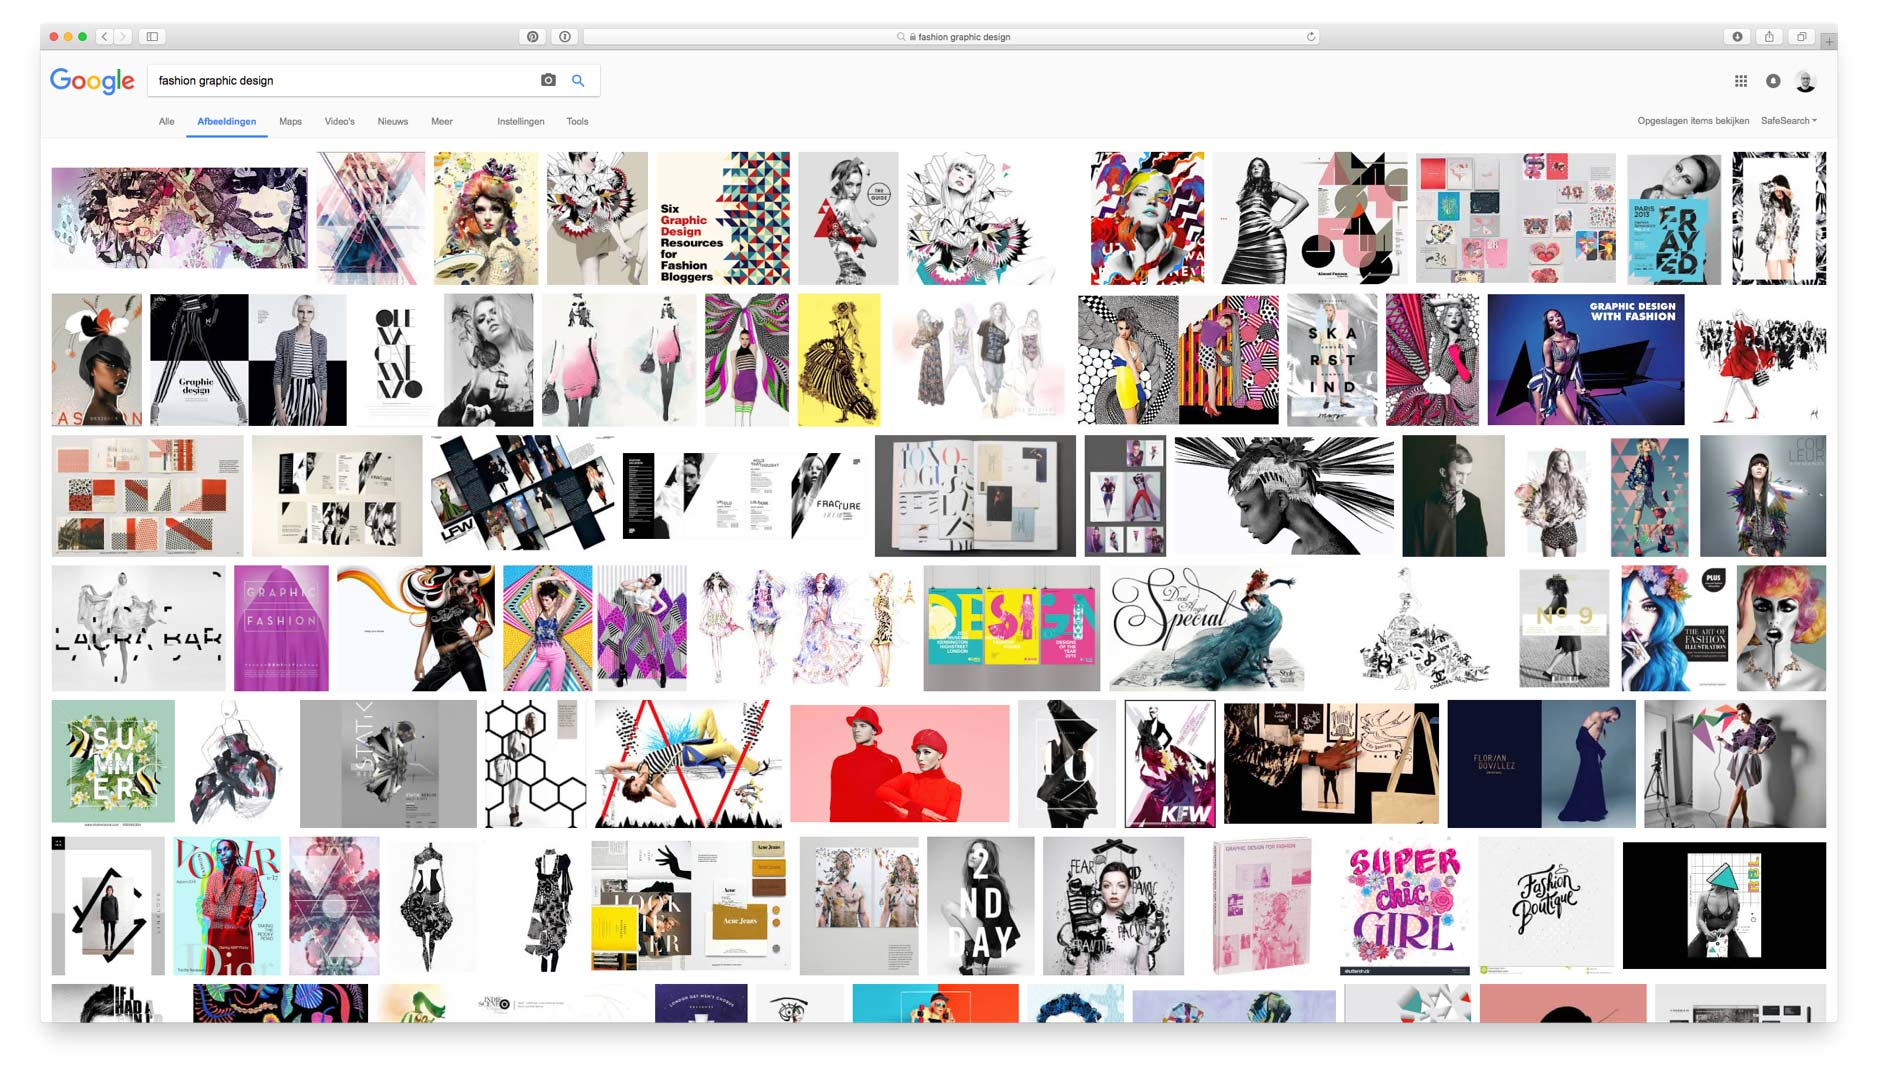 Google Images search result page for Fashion Graphic Design